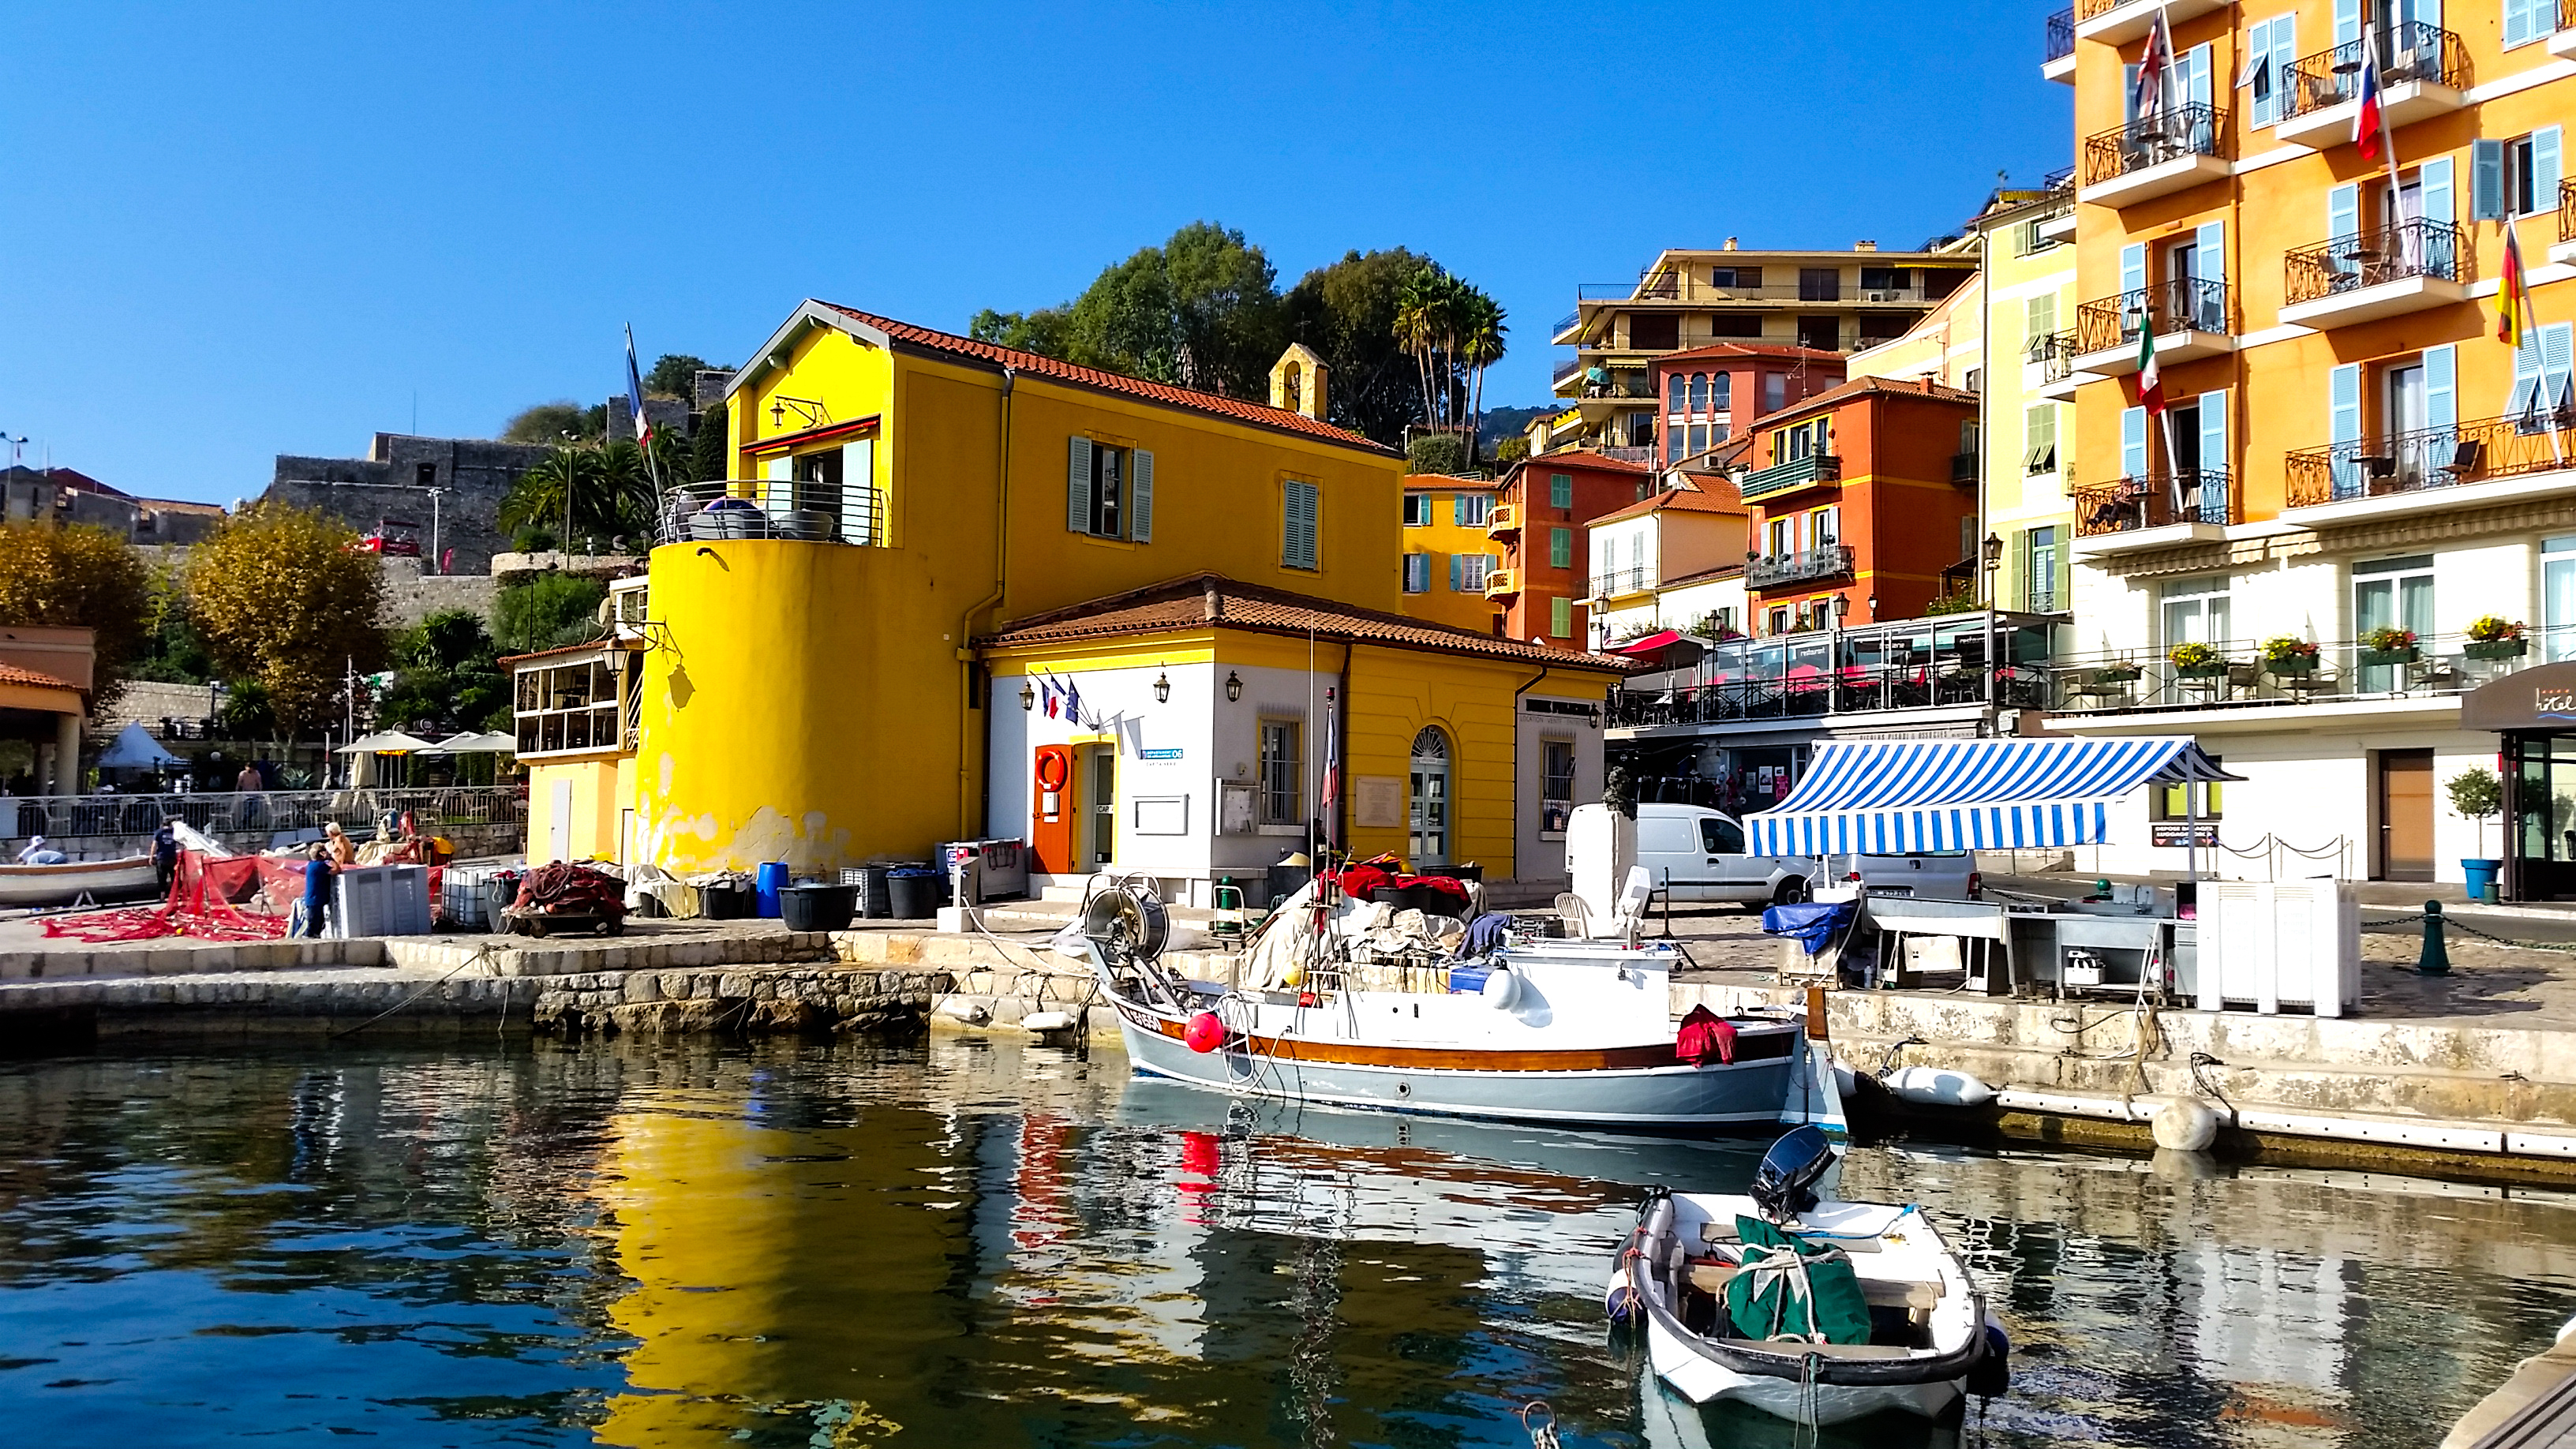 Villefranche – A Walk Along the Southern France Seaside Town